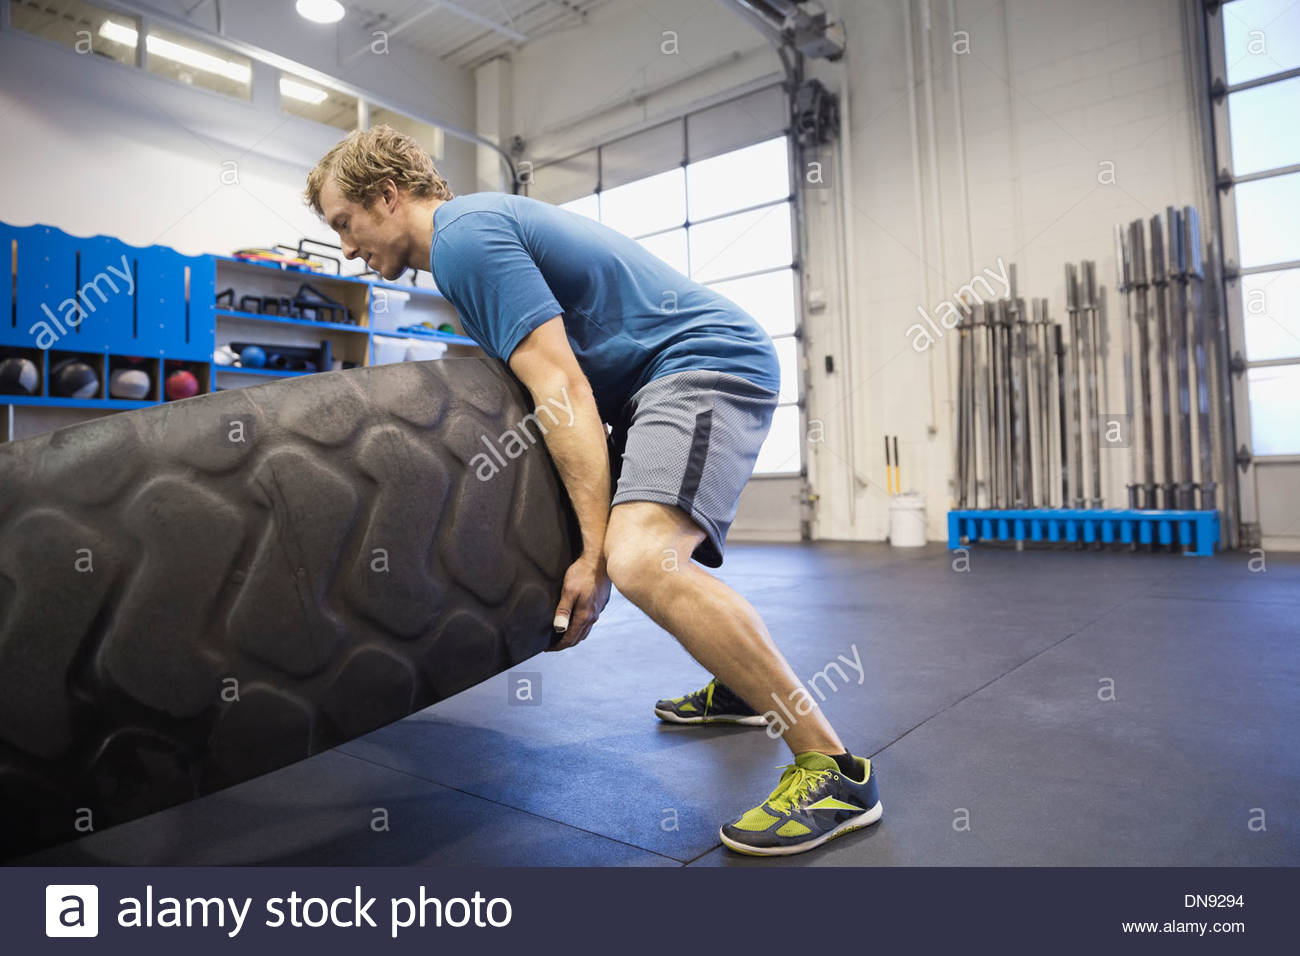 Man doing tire-flip exercise in Crossfit gym - Stock Image